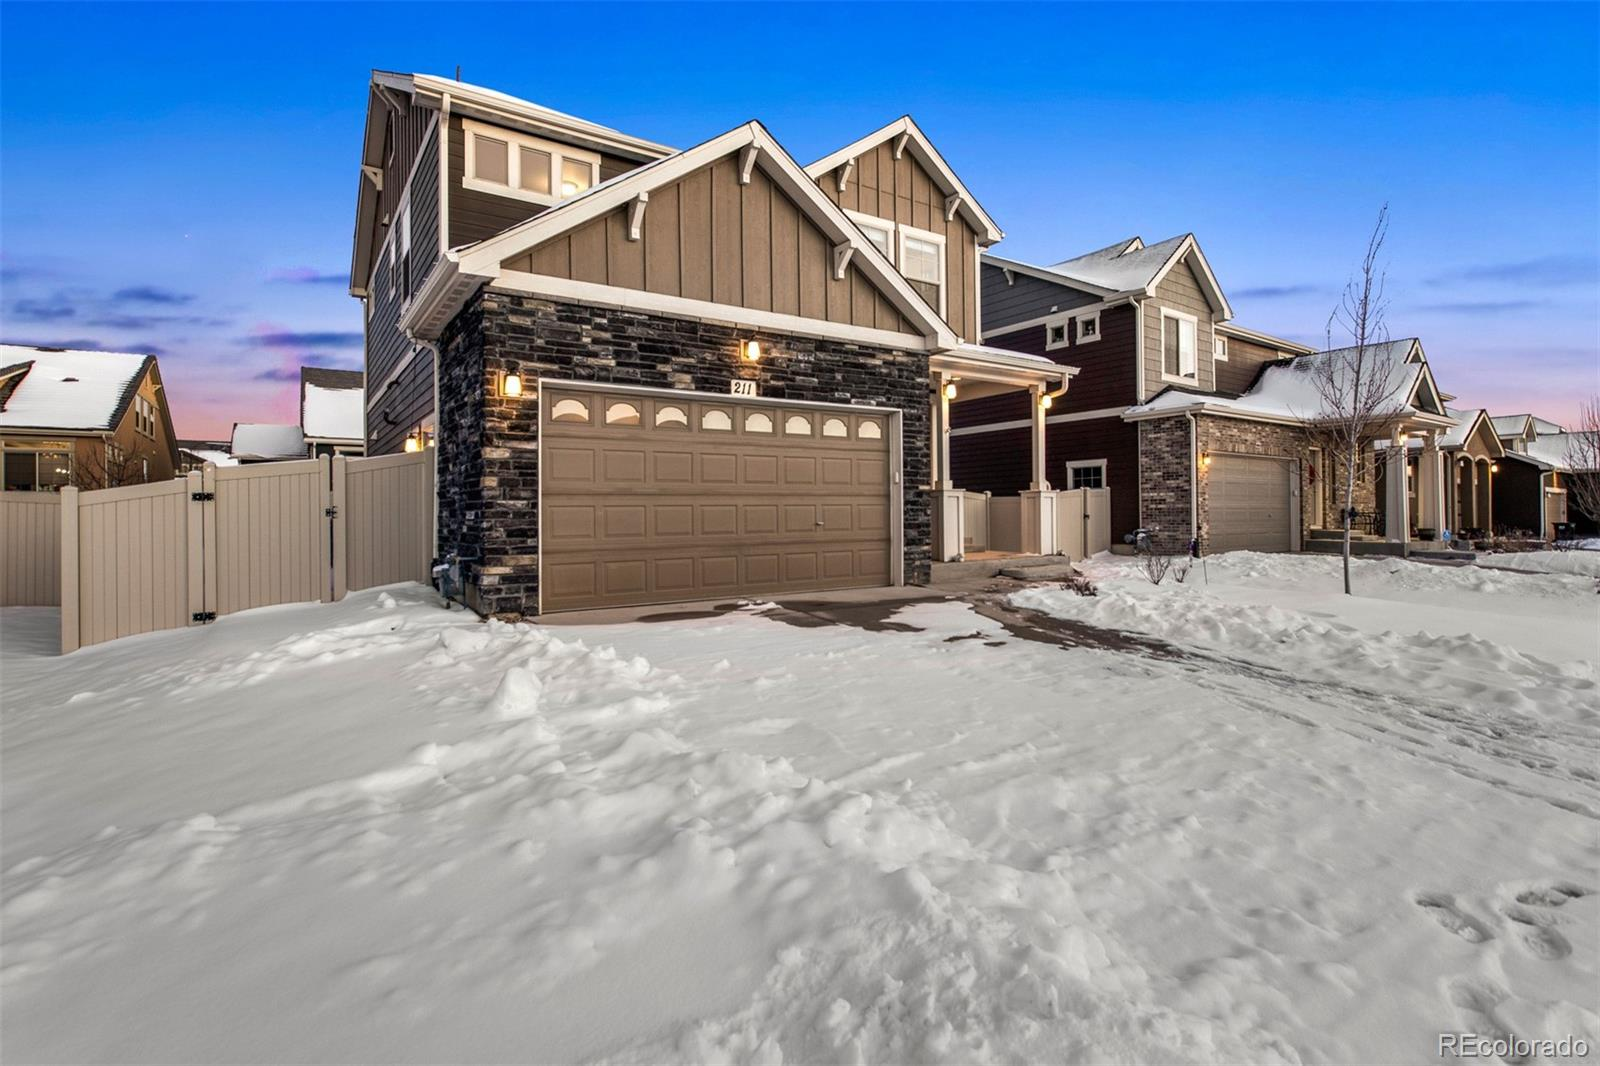 MLS# 6282621 - 2 - 211 Pear Lake Way, Erie, CO 80516